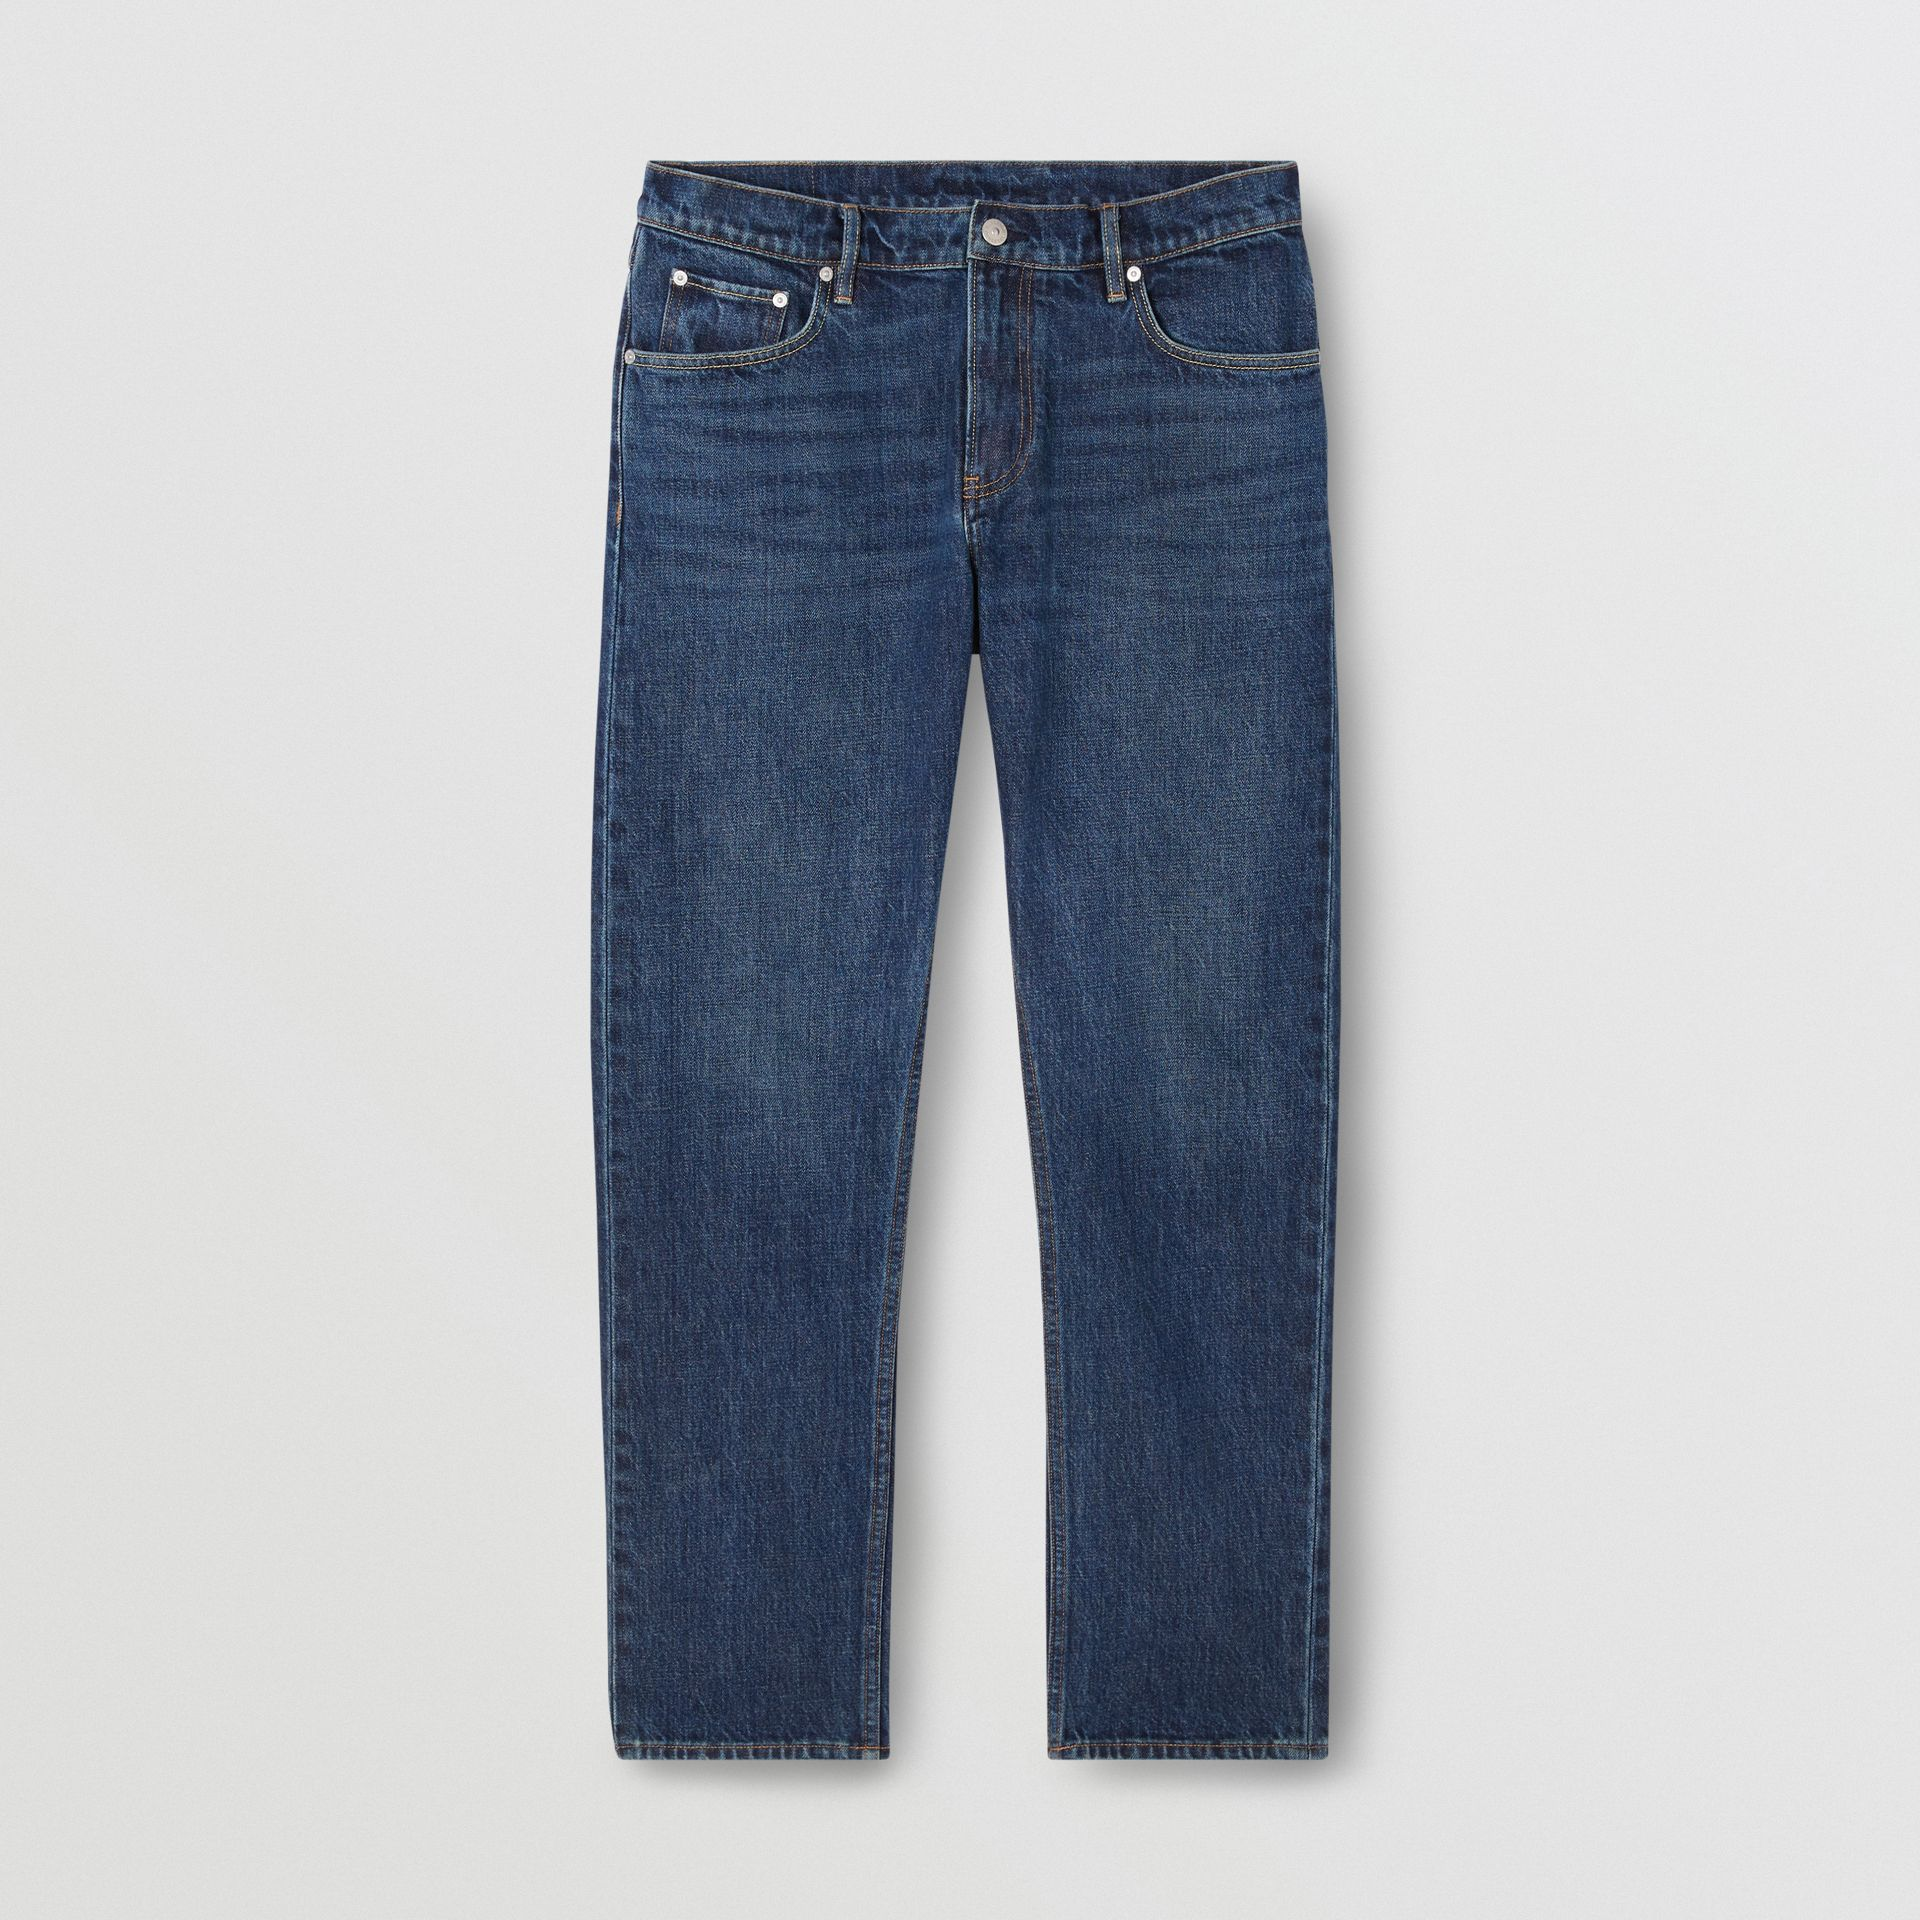 Straight Fit Washed Jeans in Dark Indigo - Men | Burberry - gallery image 3